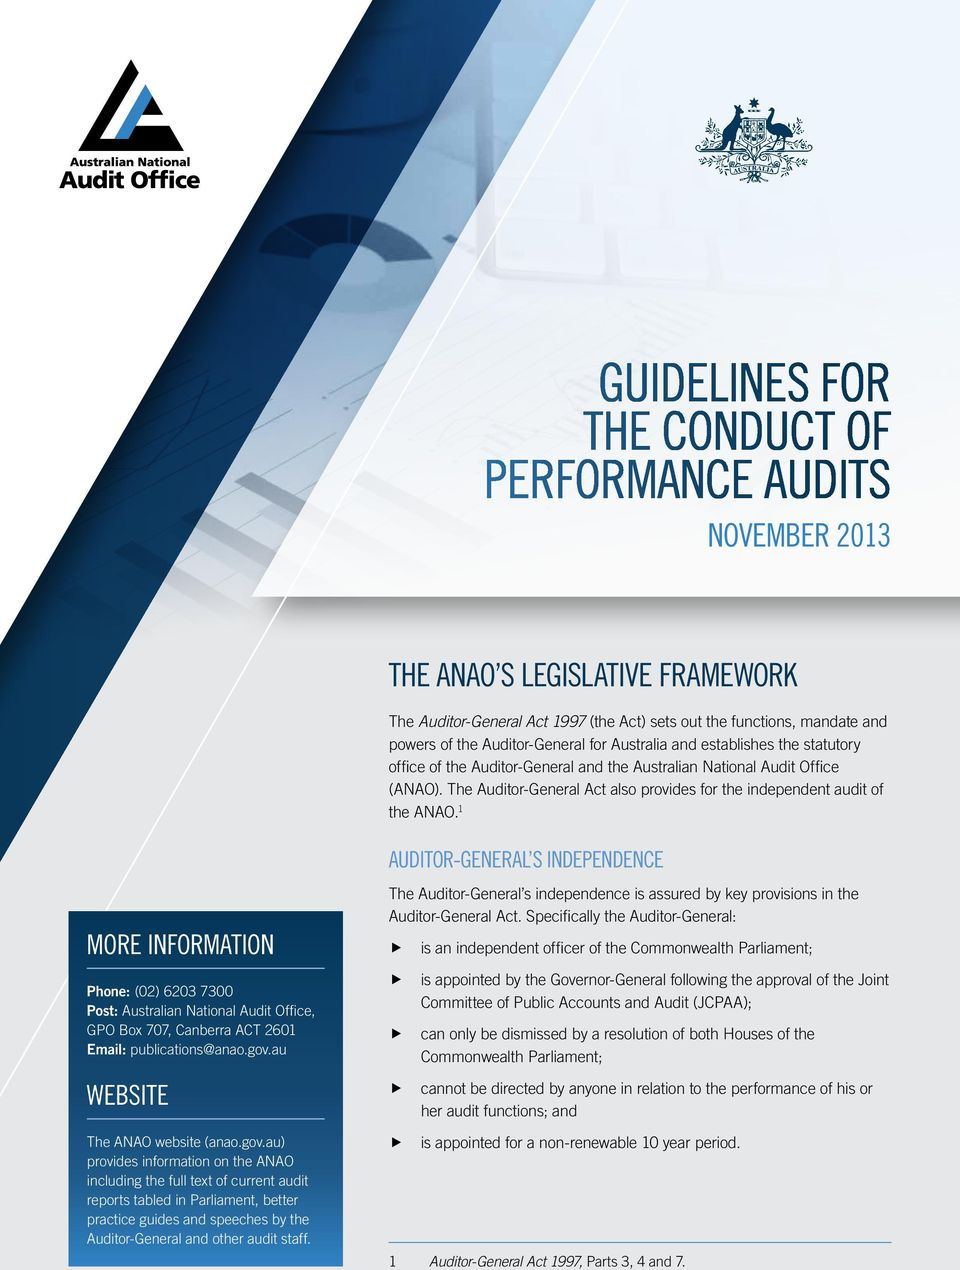 The Auditor-General Act also provides for the independent audit of the ANAO.